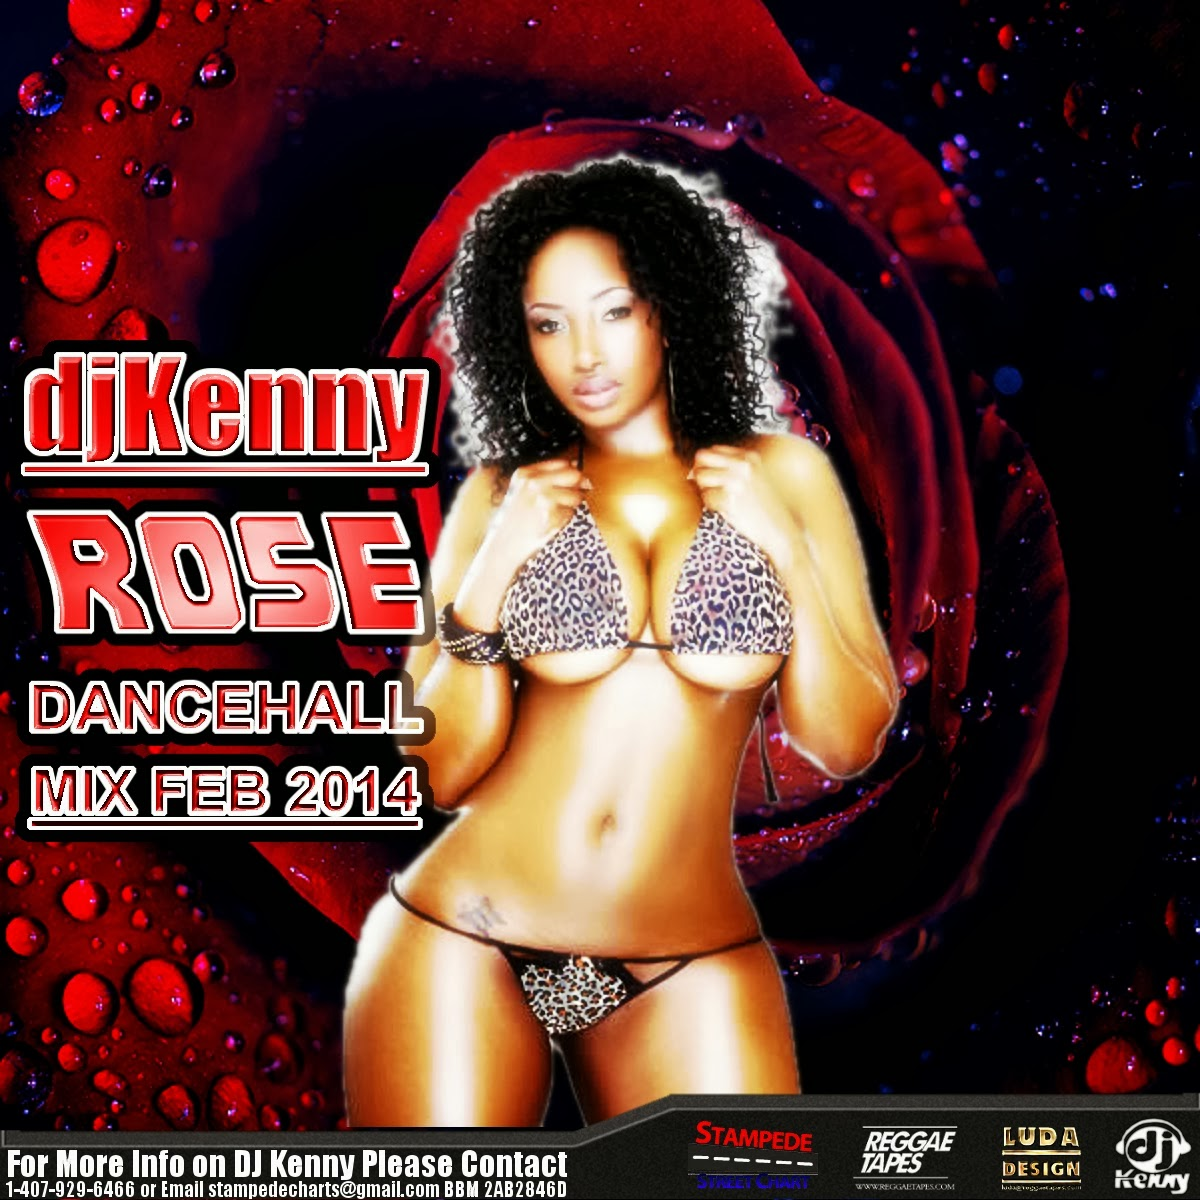 Dj Kenny - Rose Dancehall Mix